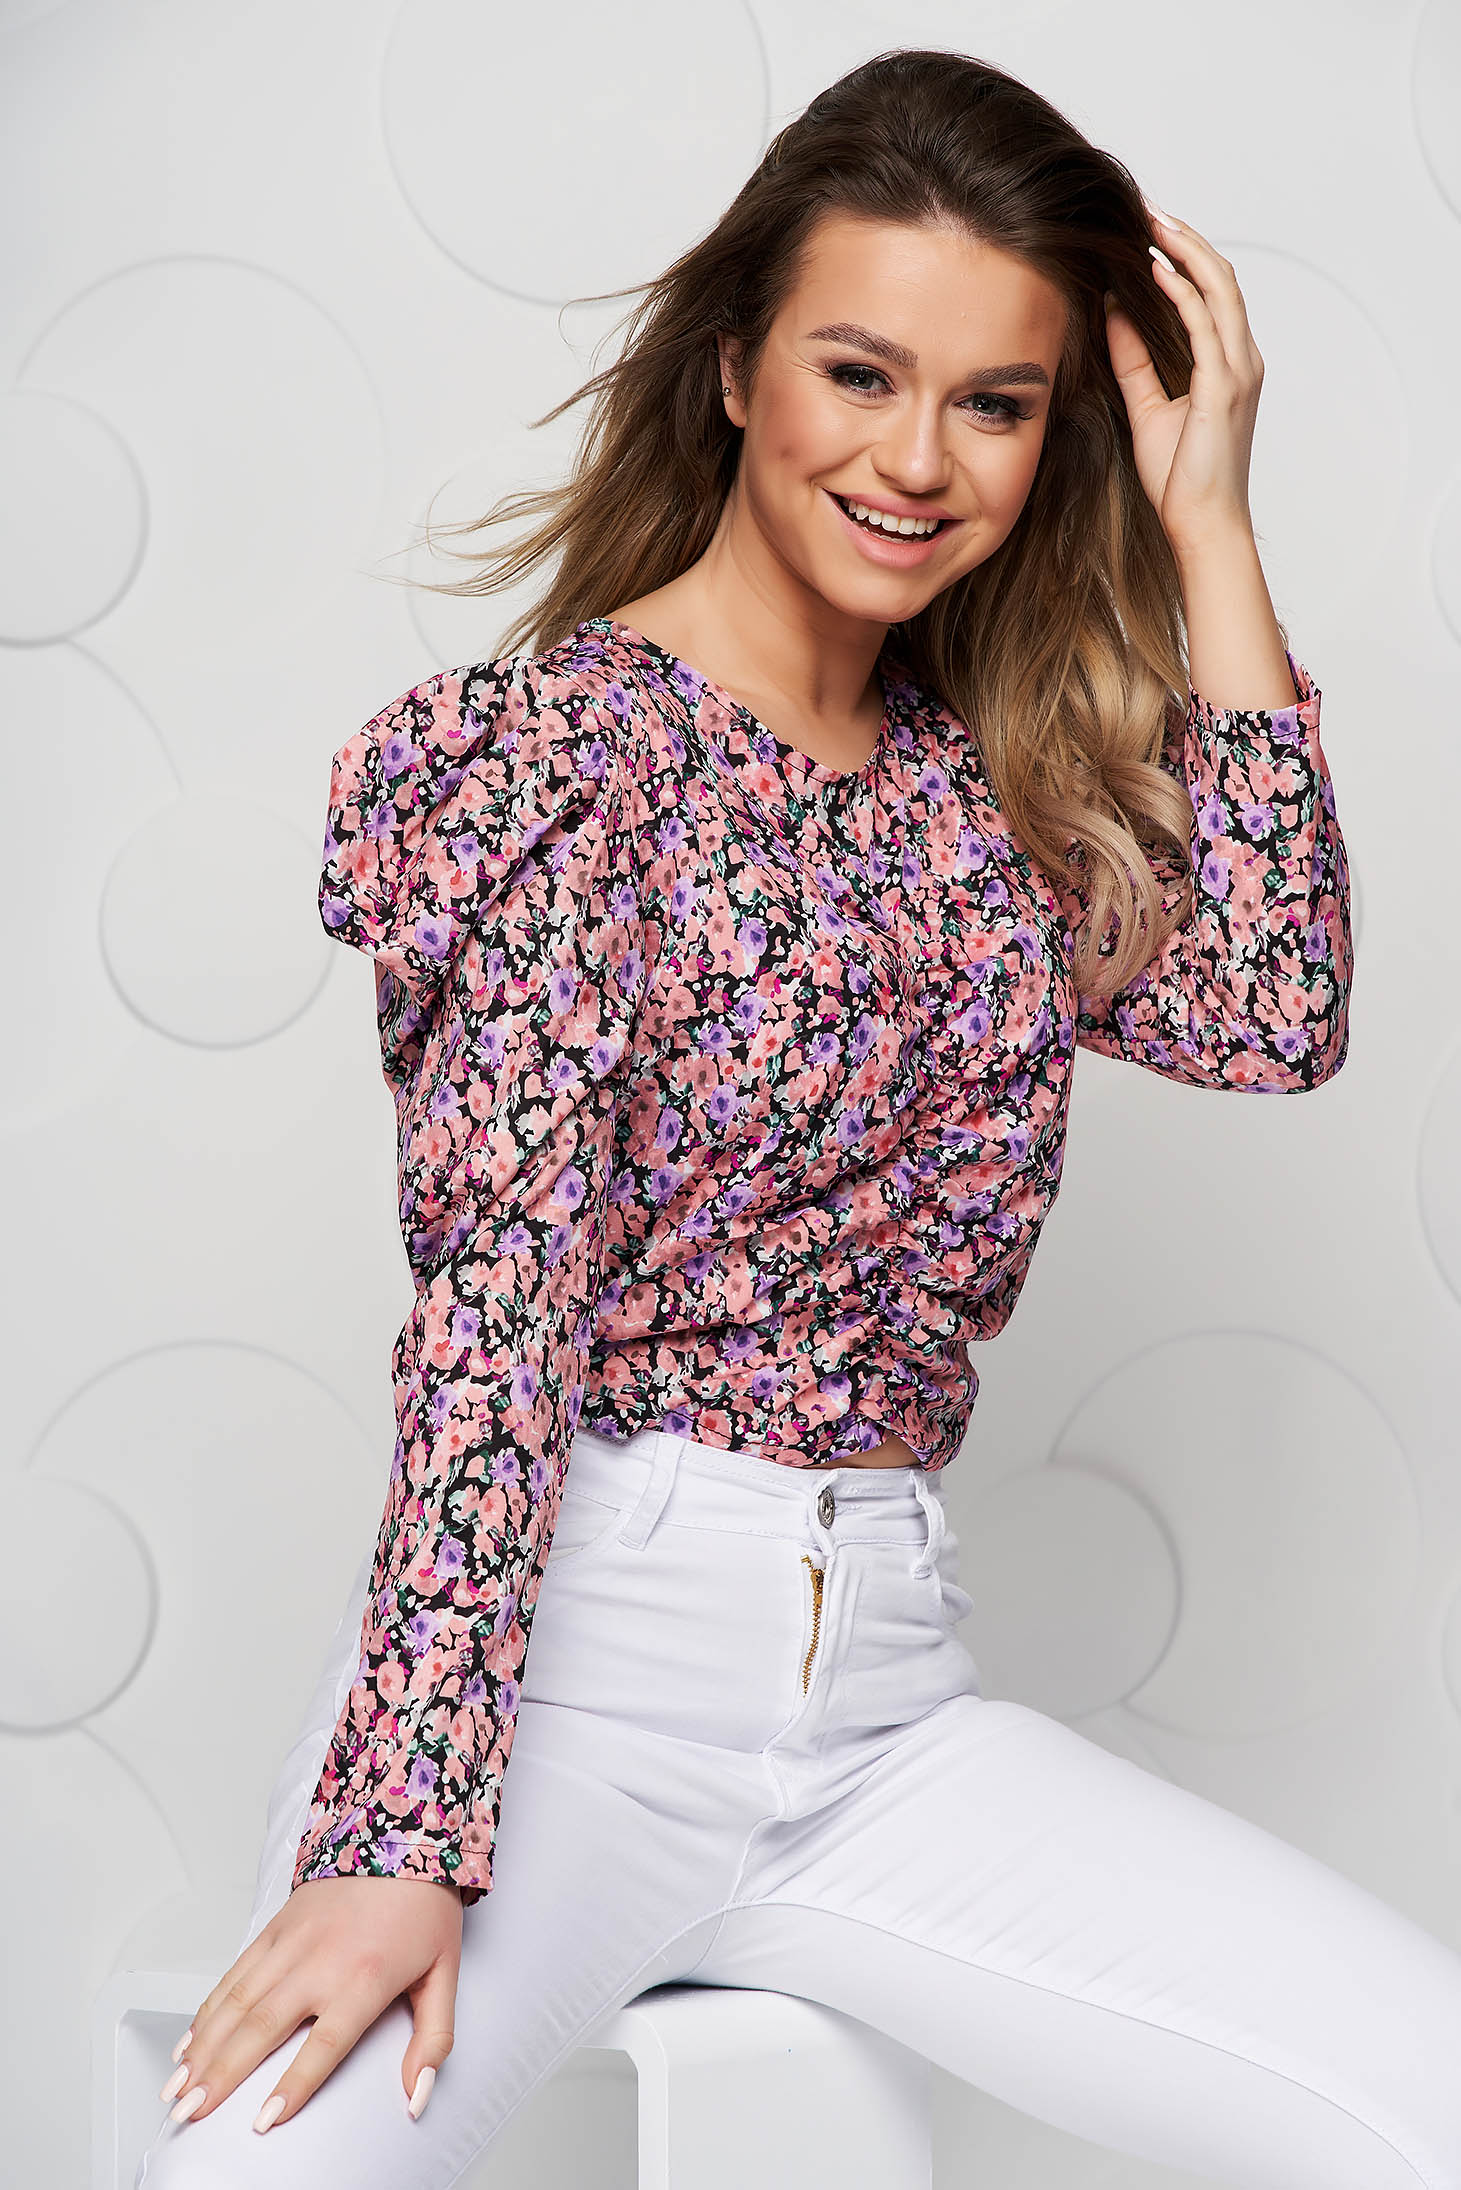 Pink women`s blouse with floral print tented from wrinkled fabric high shoulders